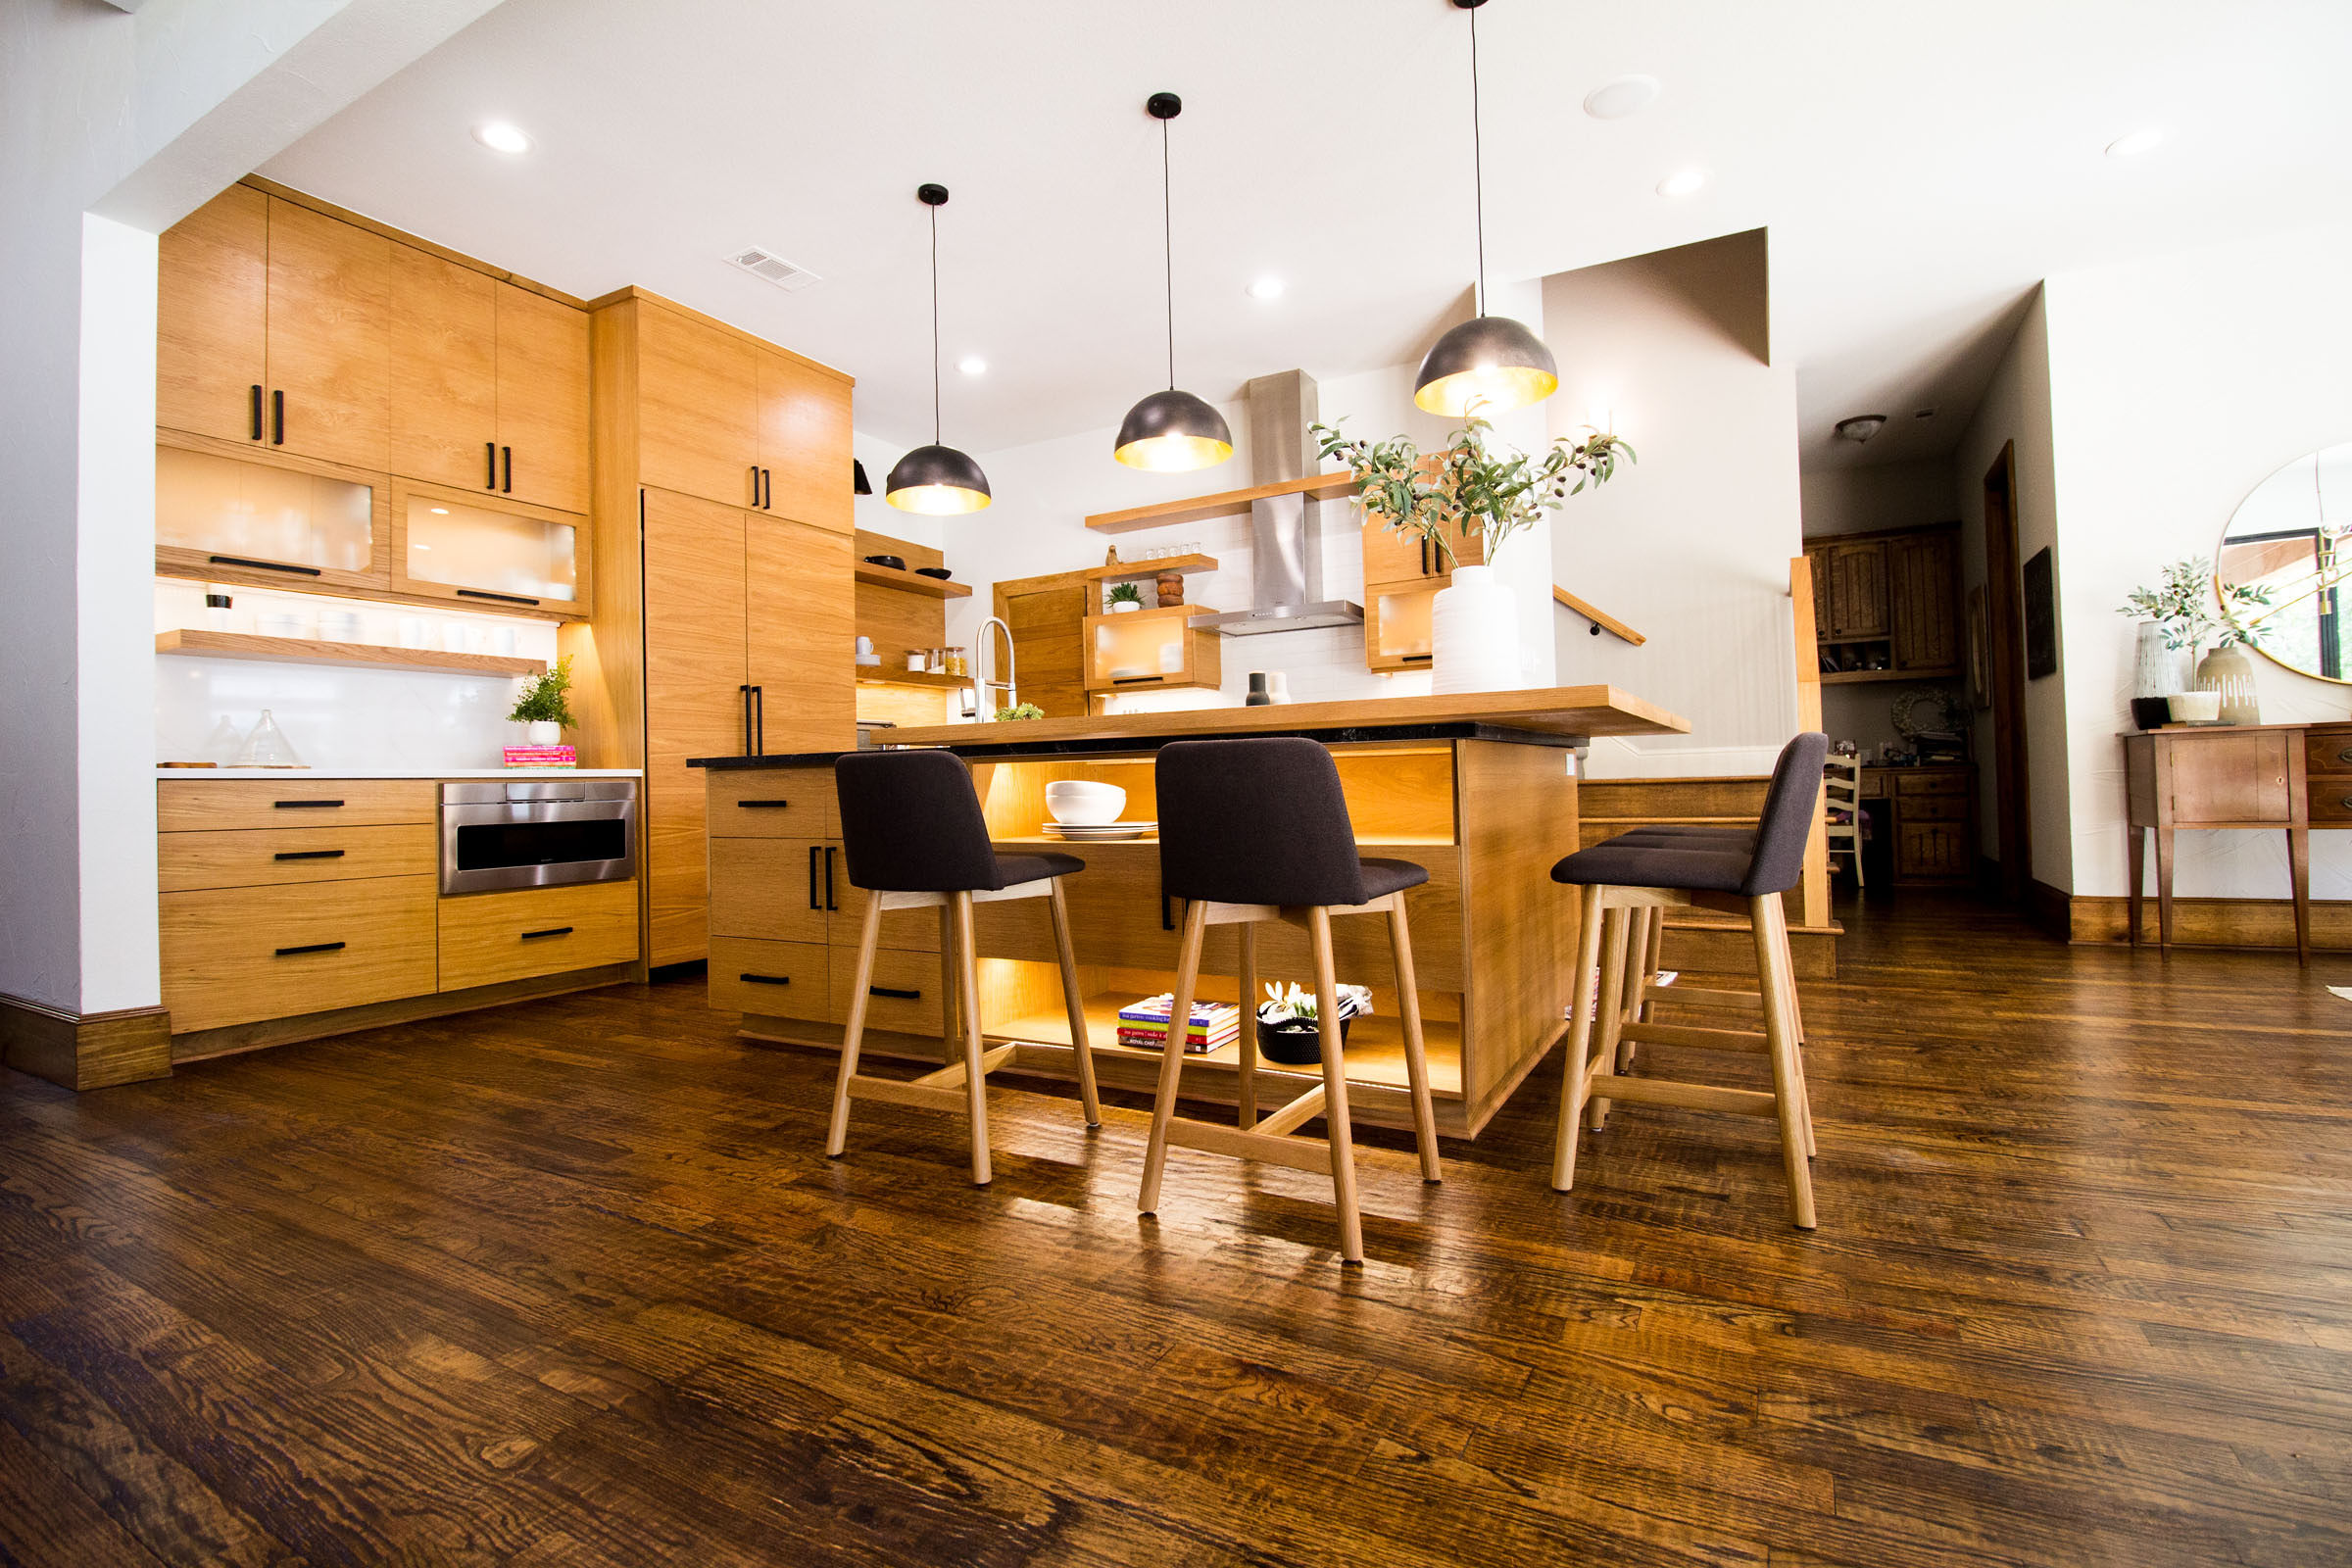 The centerpiece of the kitchen is the unique island with lots of storage, exposed cabinet space, black cloth bar stools, and under lighting.